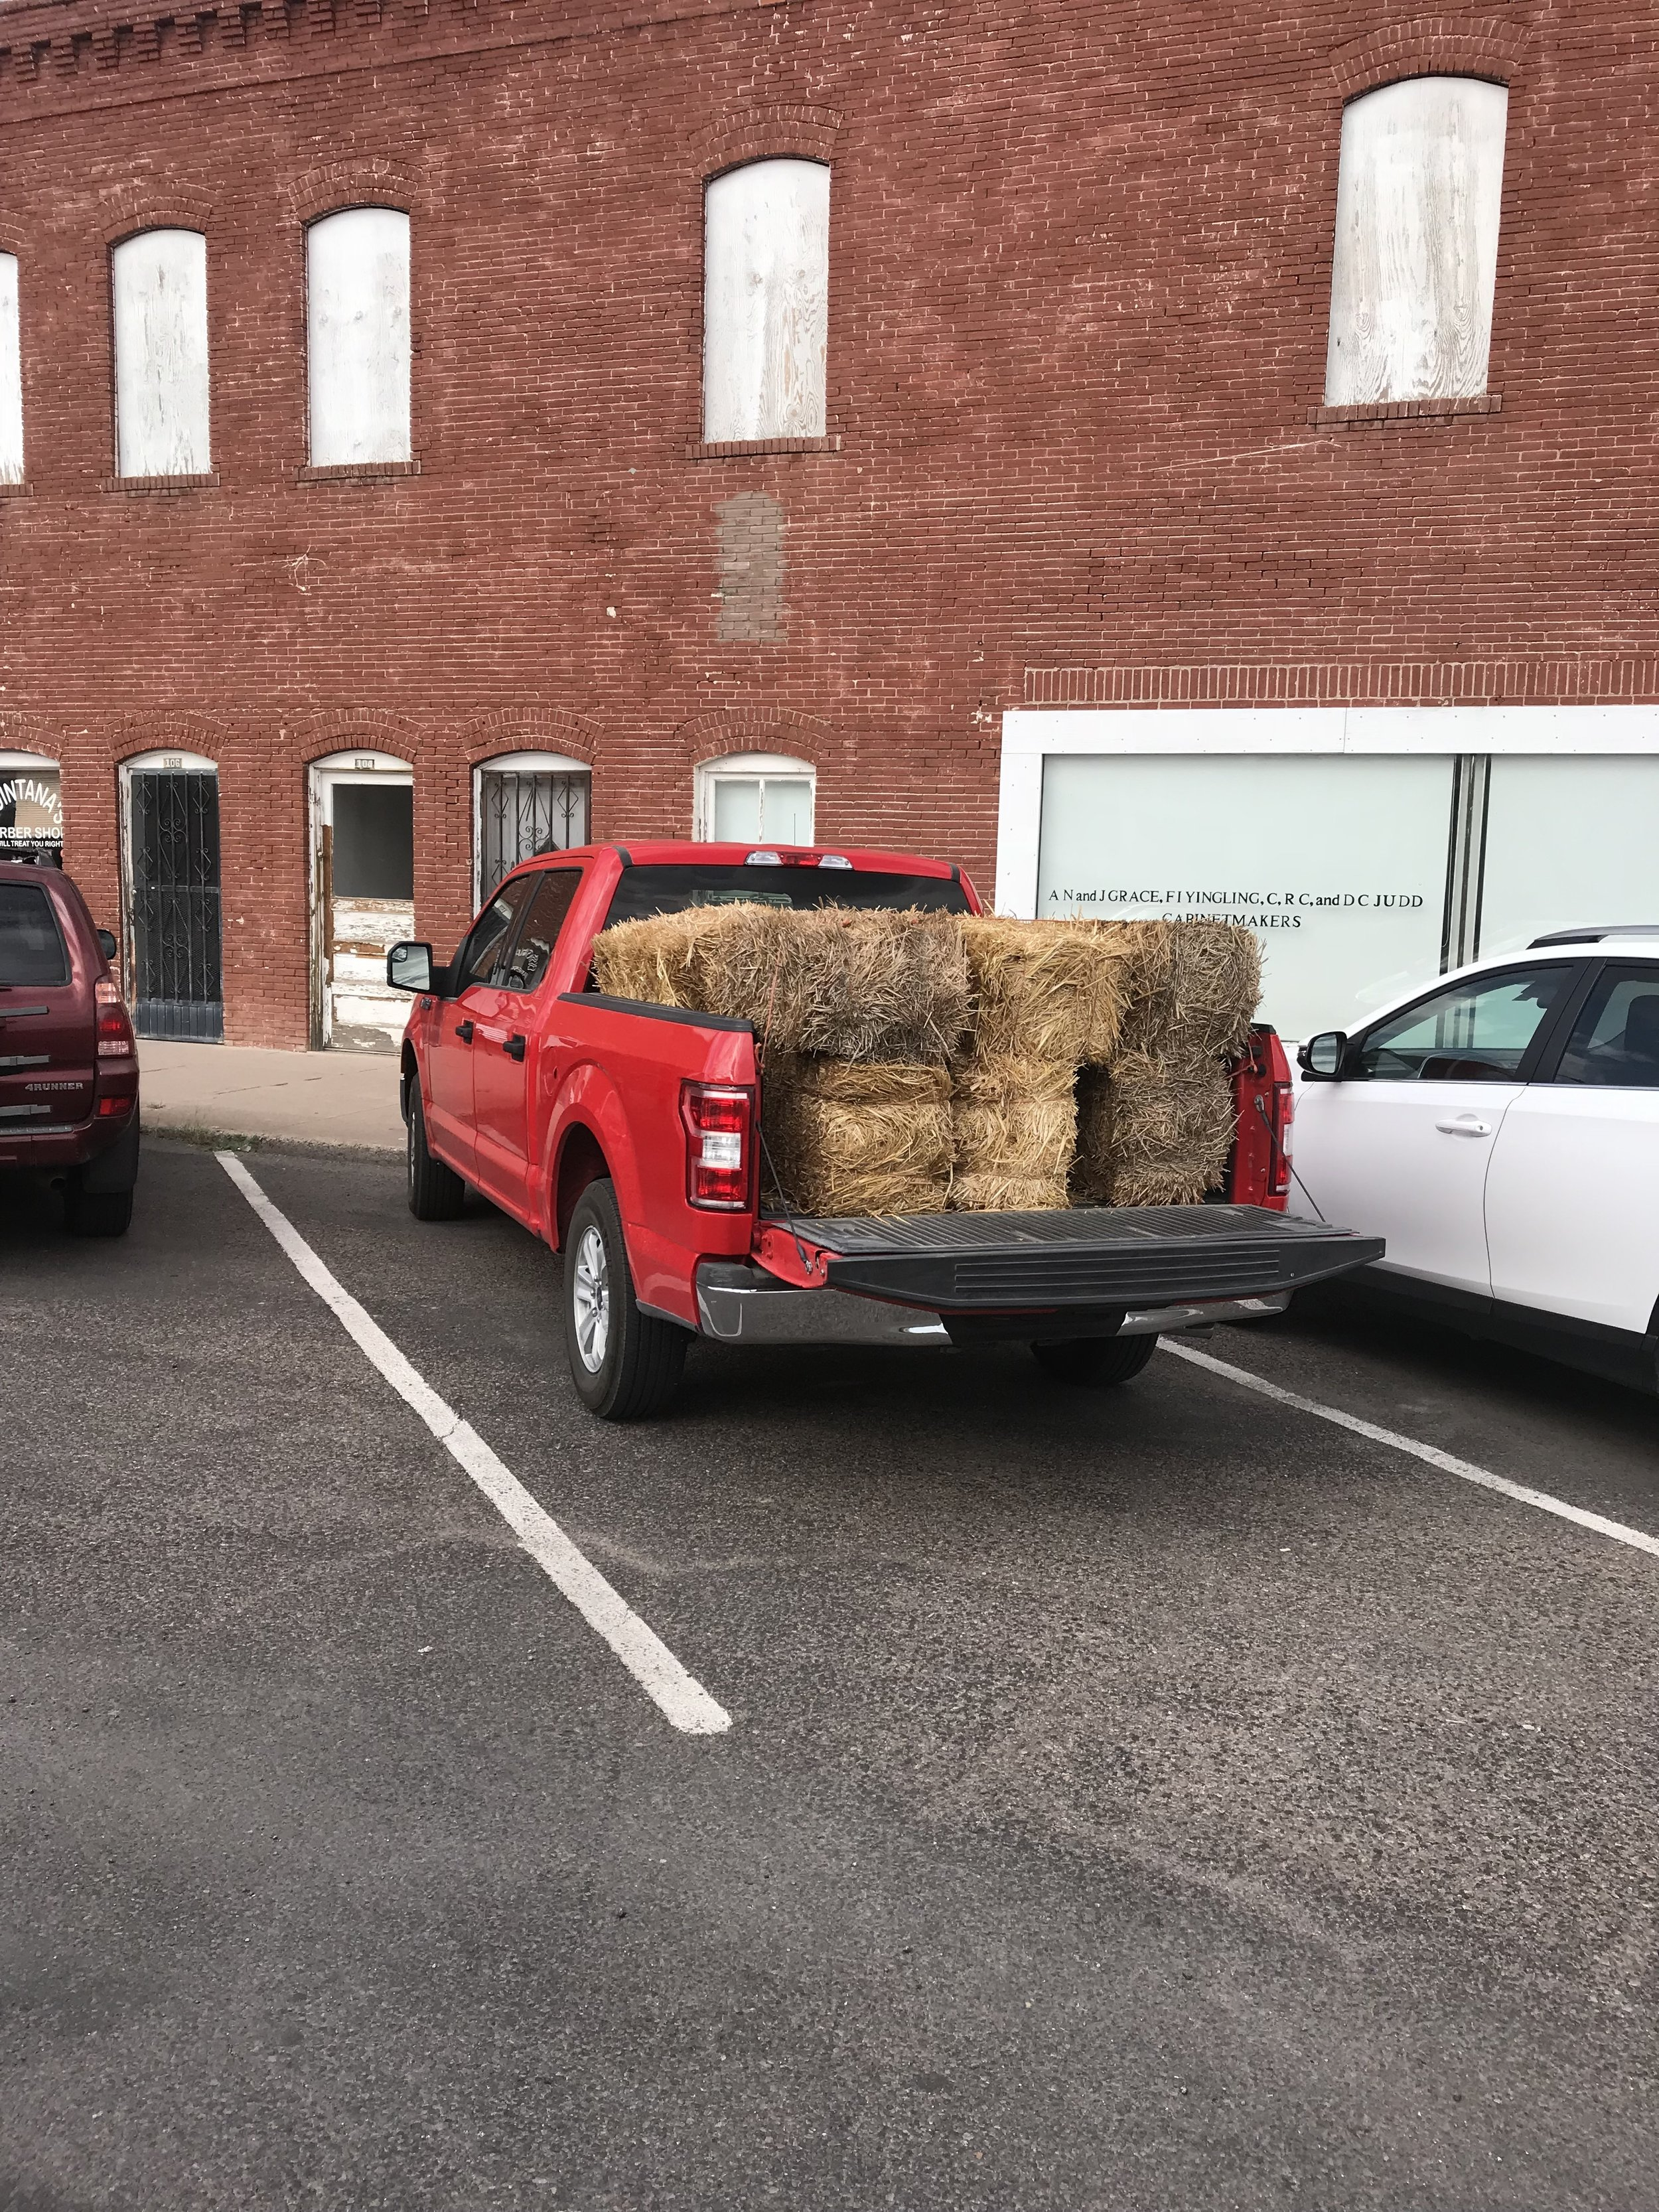 Driving around Marfa with a truck full for straw.